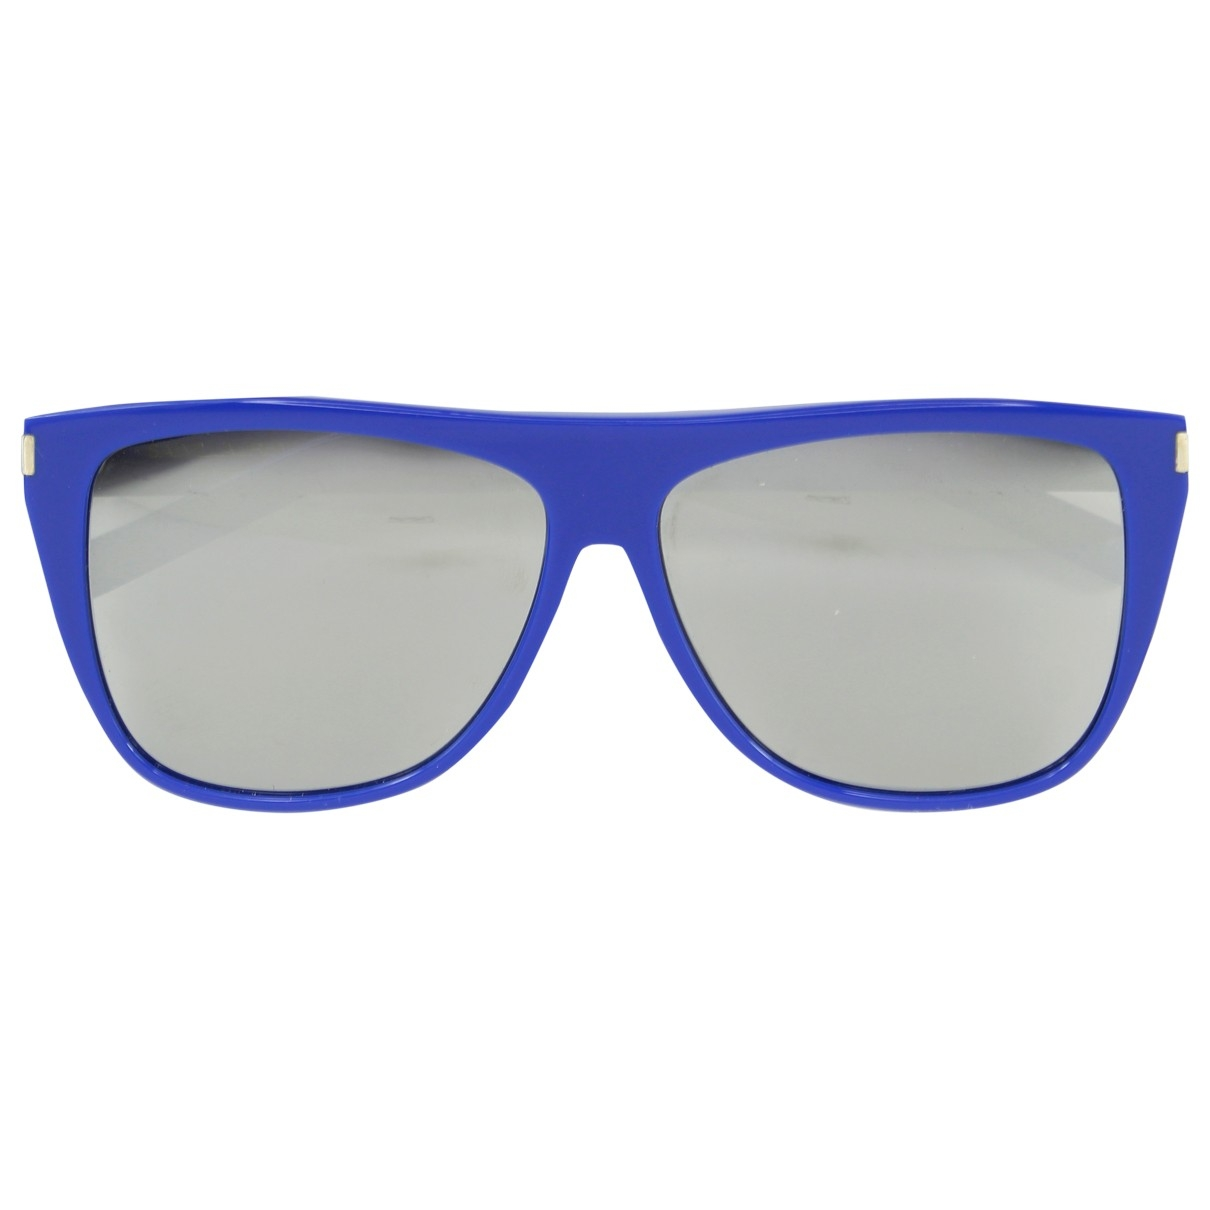 Saint Laurent \N Blue Sunglasses for Women \N